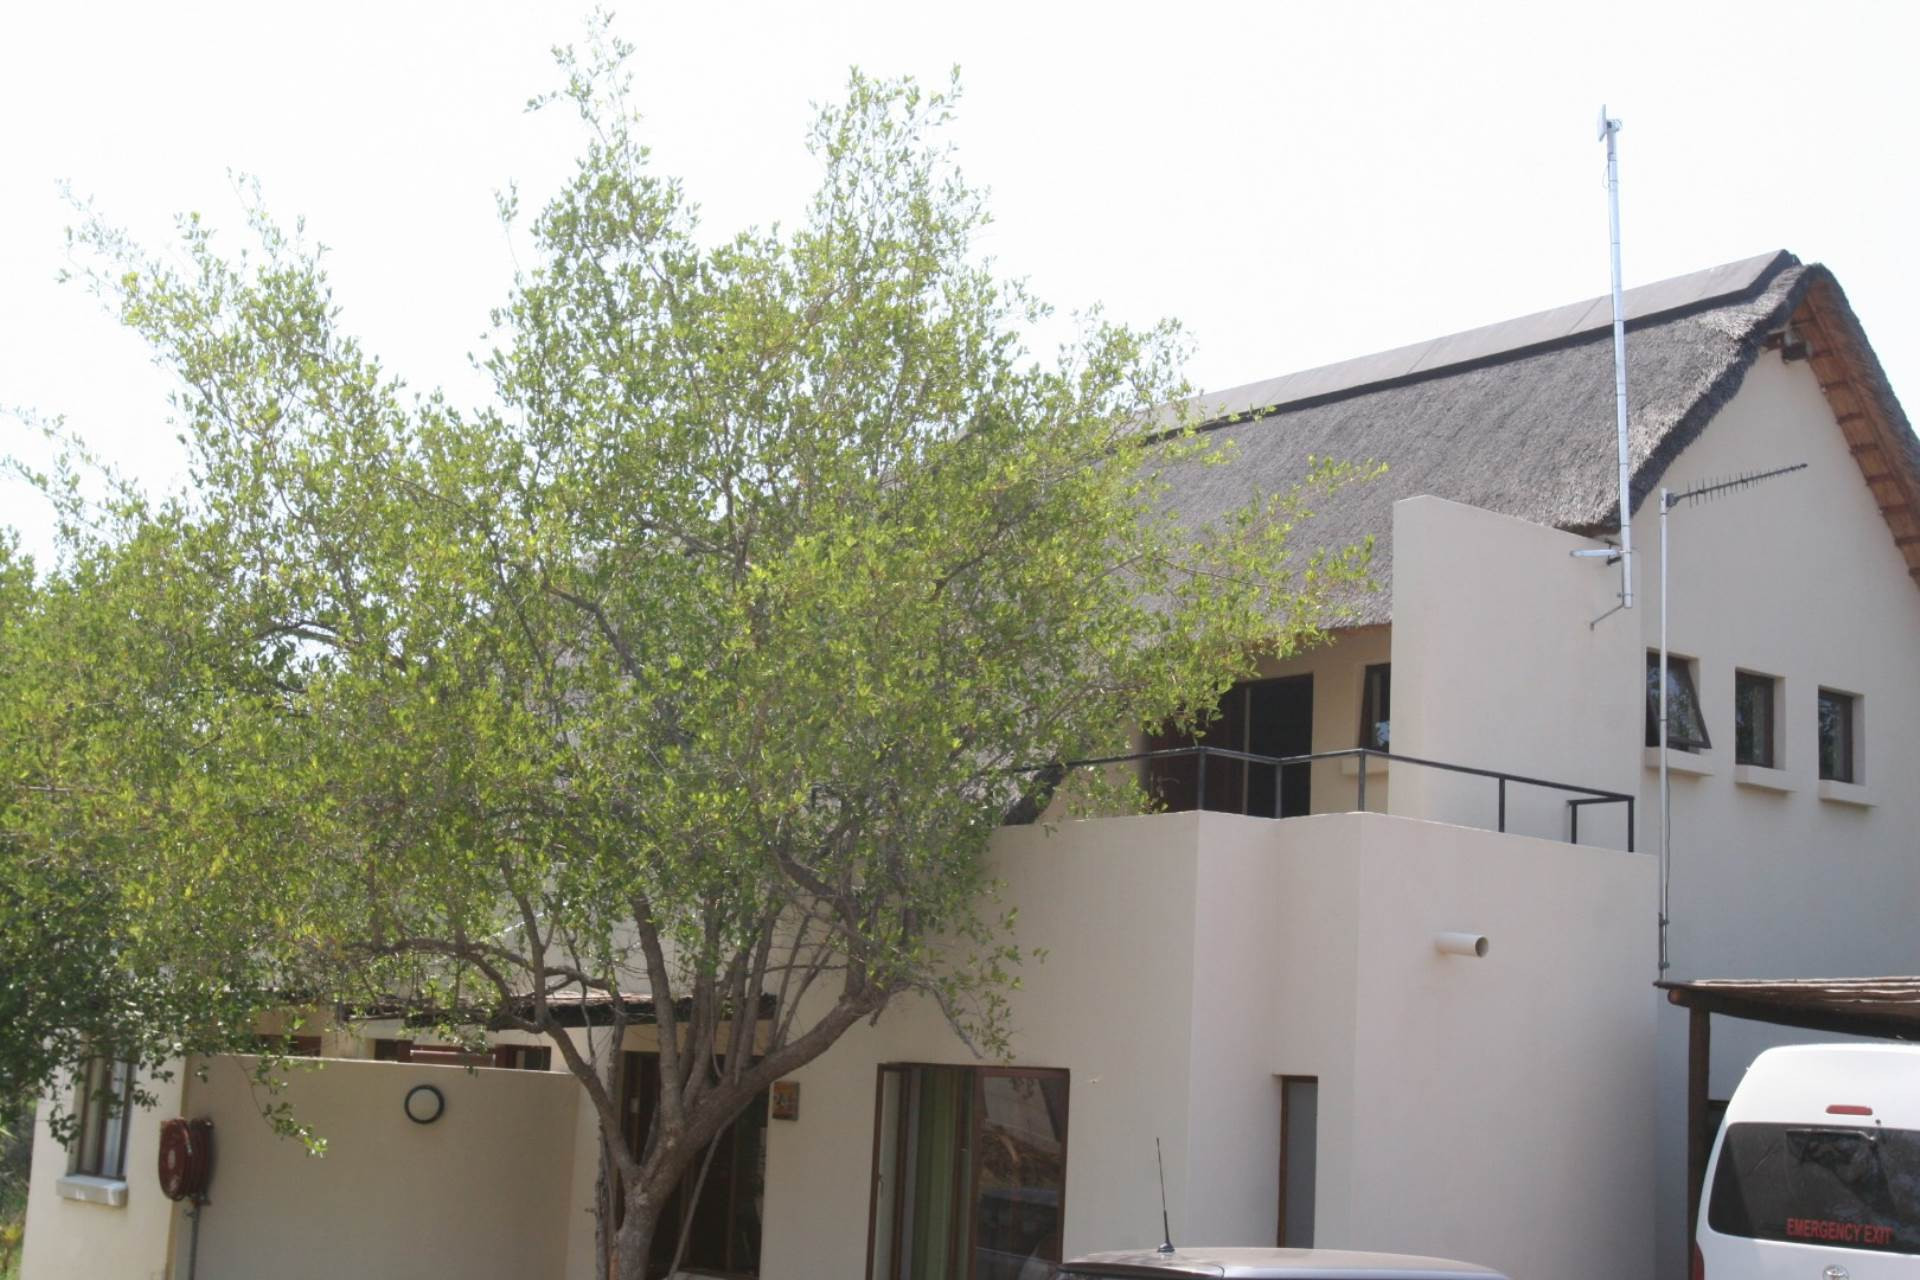 3 BedroomHouse For Sale In Hoedspruit